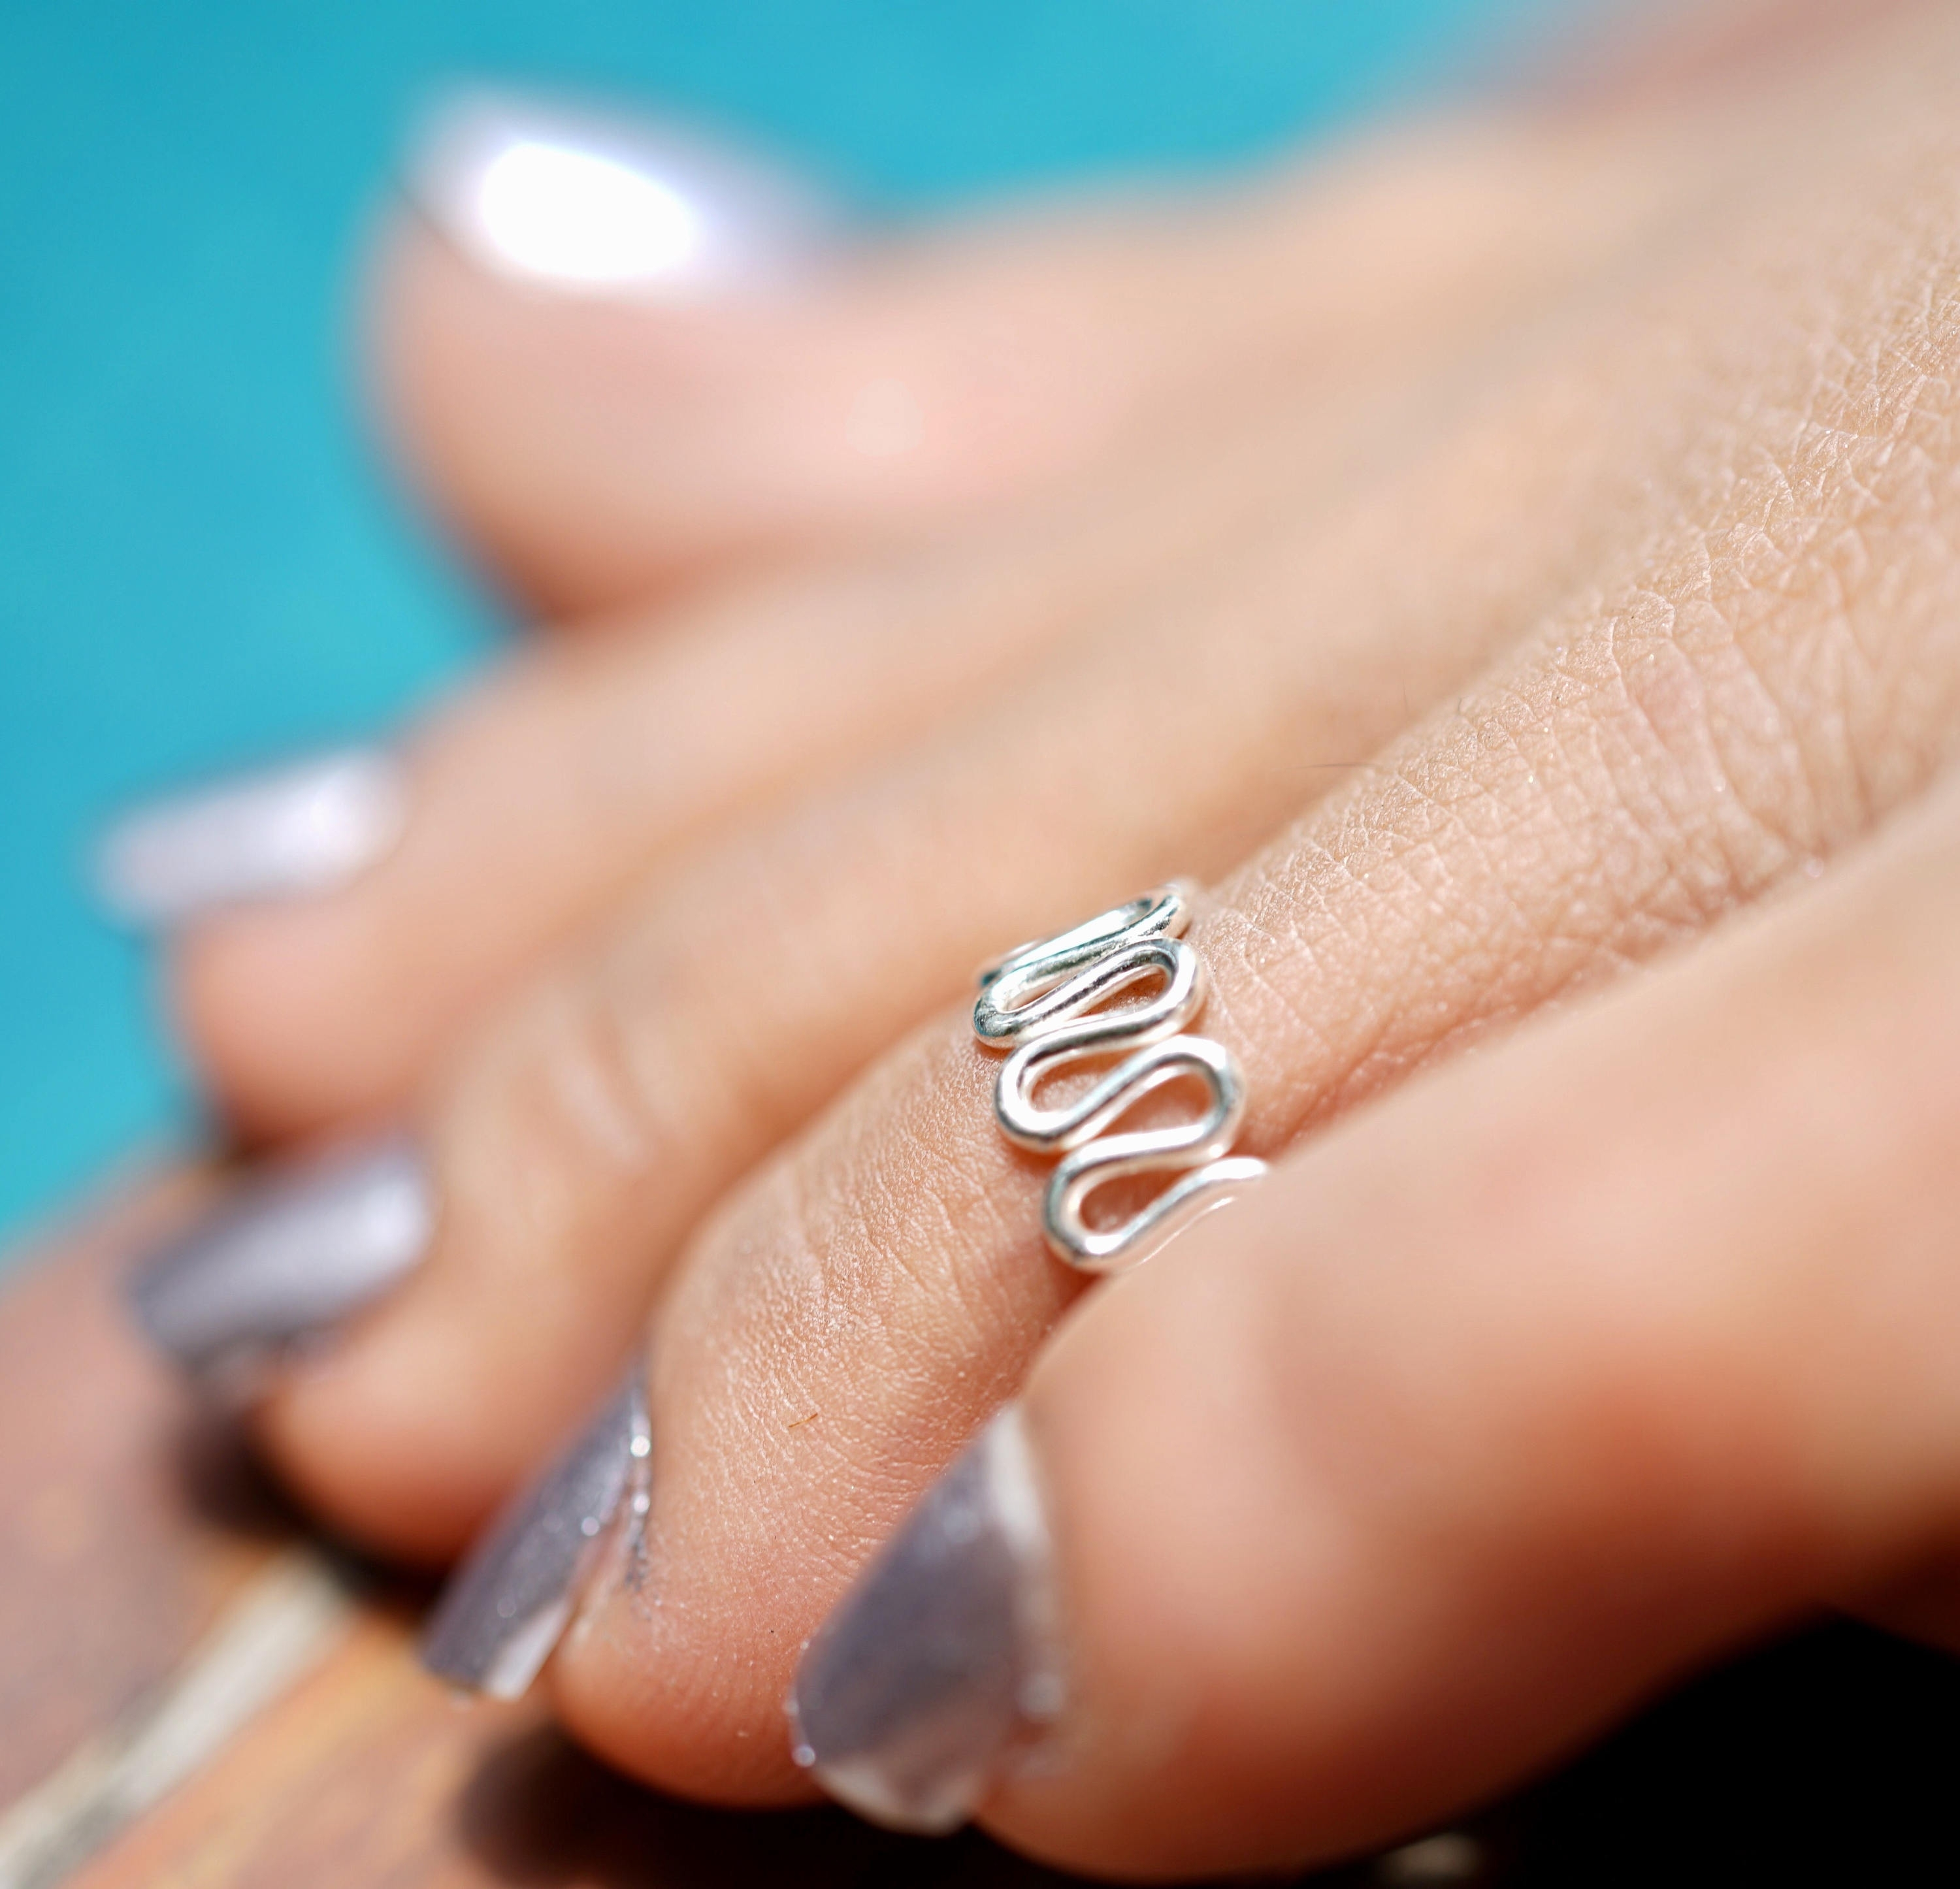 Toe Ring, Silver Toe Ring, Minimalist Silver Jewelry, Hippie Style Intended For Latest Adjustable Toe Rings (View 24 of 25)